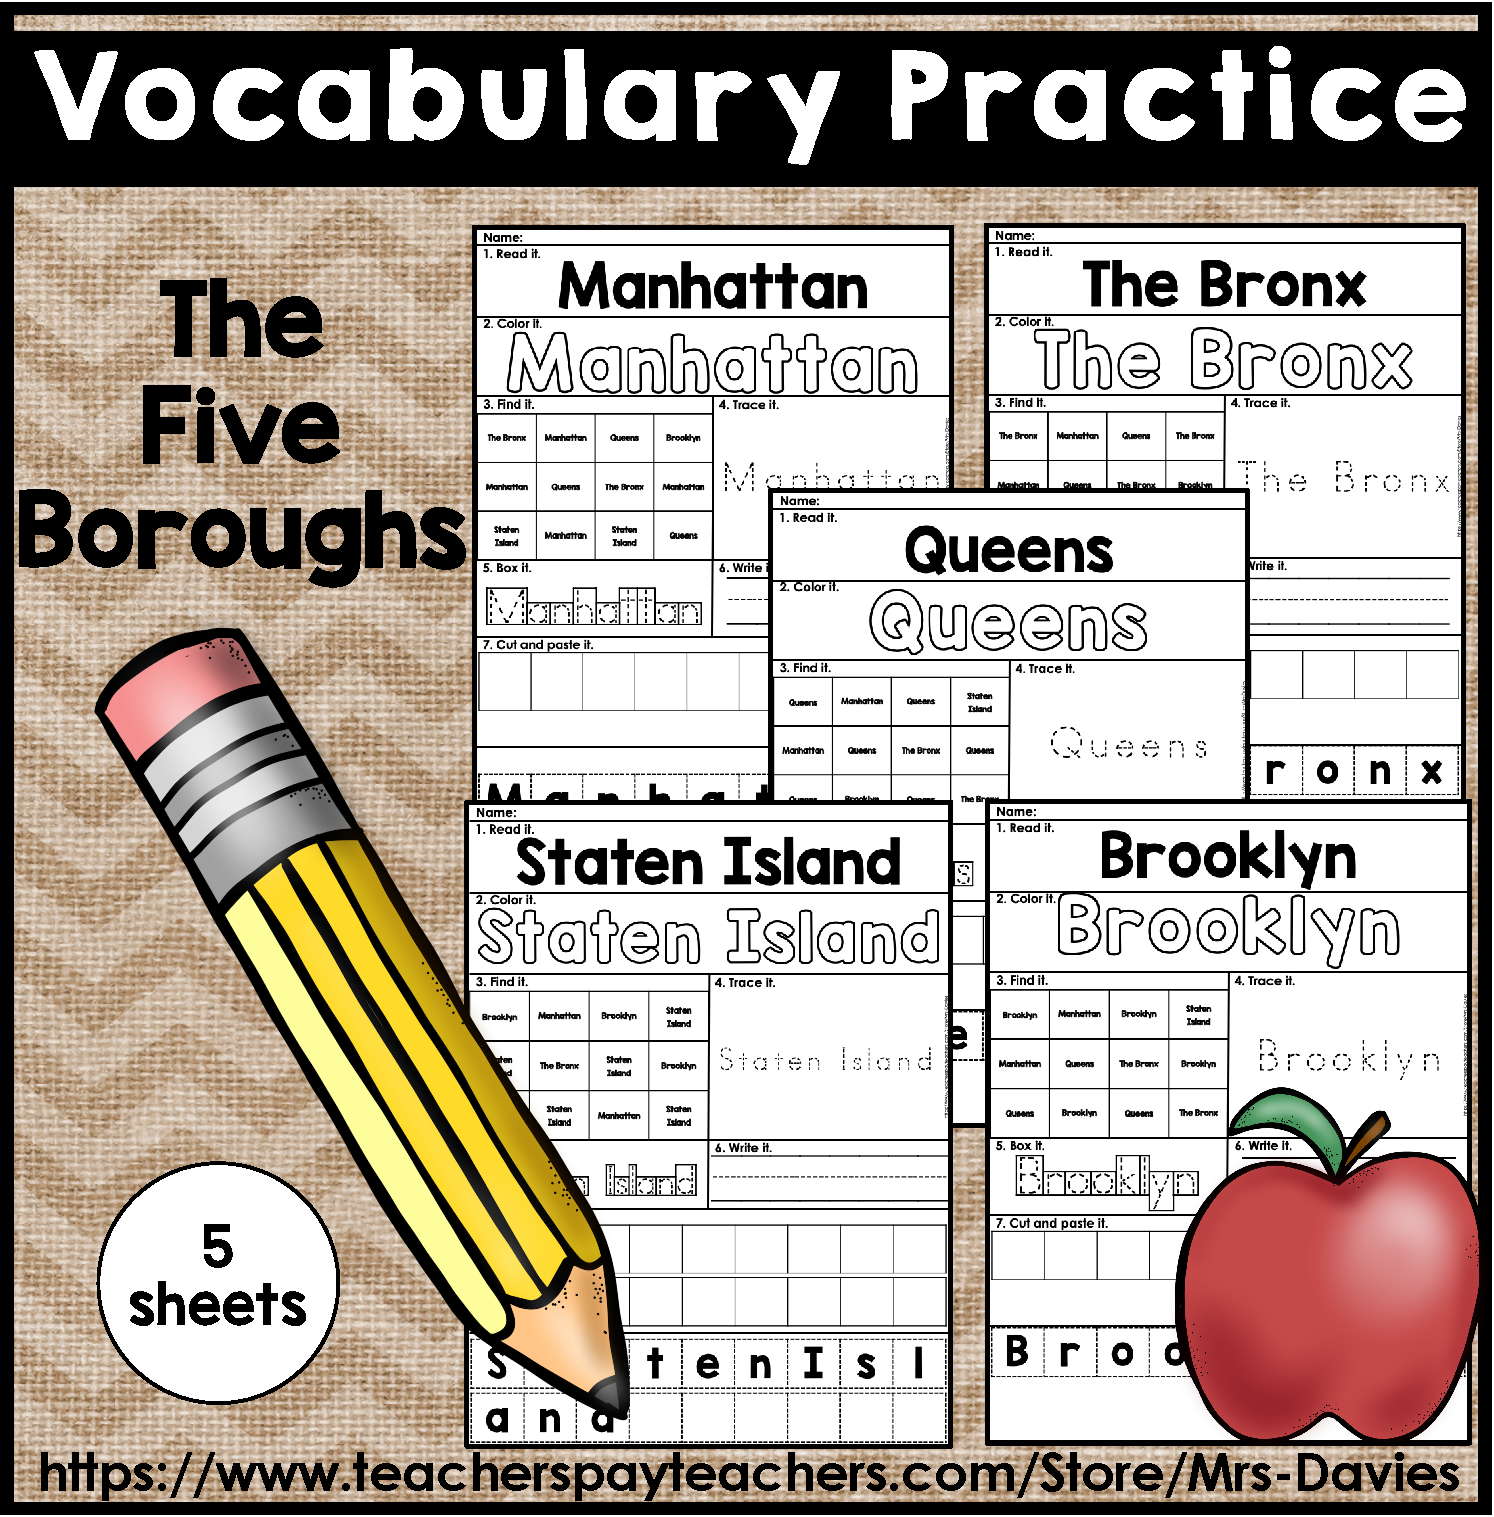 The Five Boroughs Of Nyc Vocabulary Practice Pages